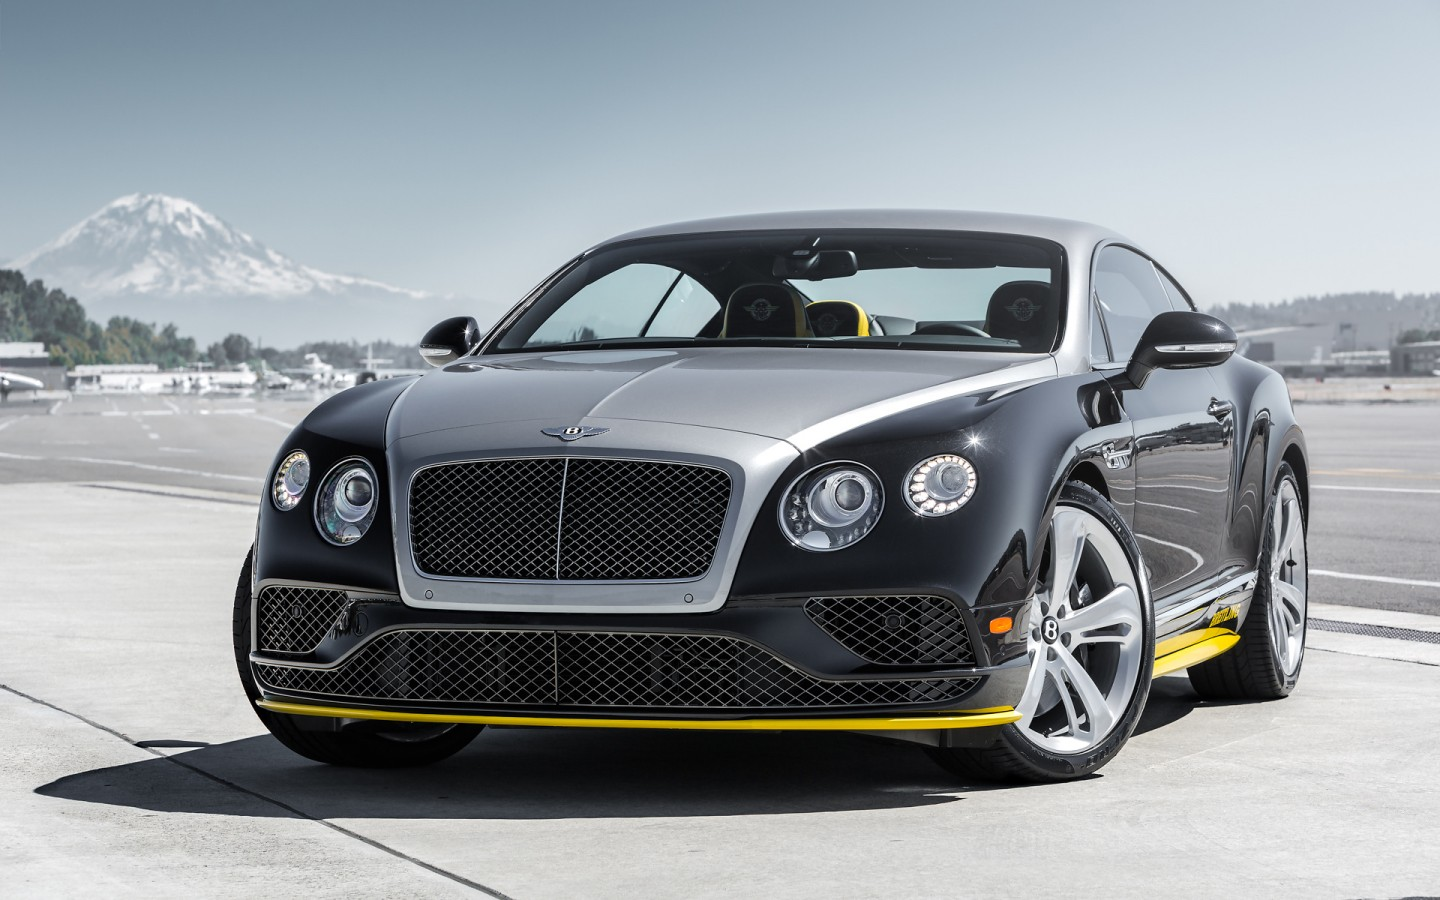 2015 Bentley Continental GT Wallpaper  HD Car Wallpapers